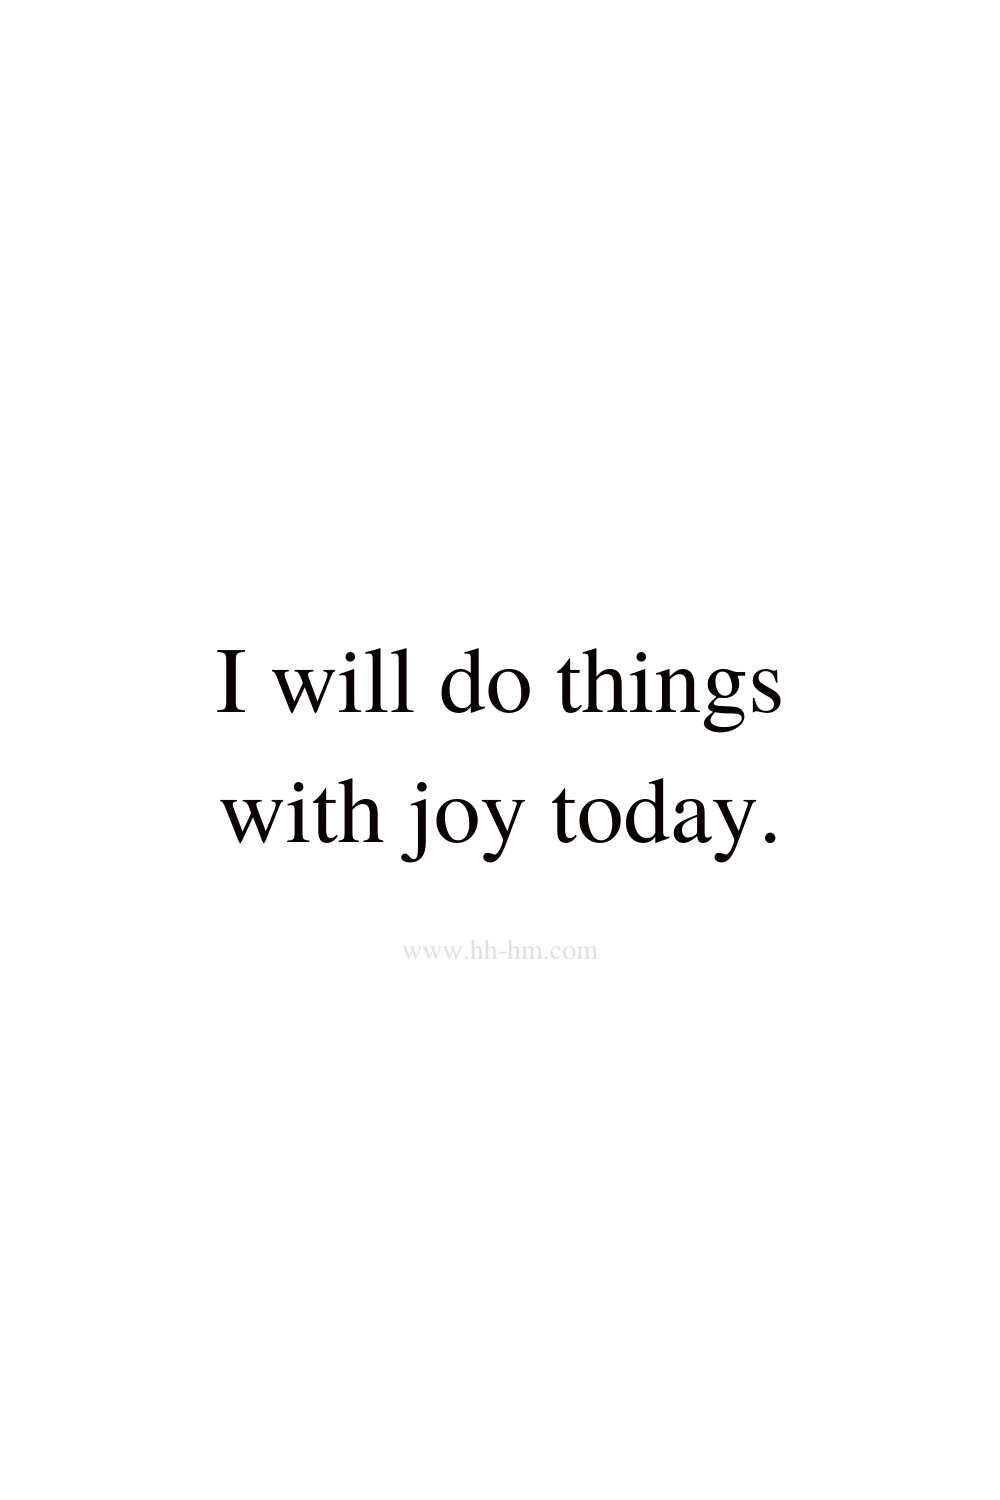 I will do things with joy today - I am excited about today - short positive affirmations for happiness